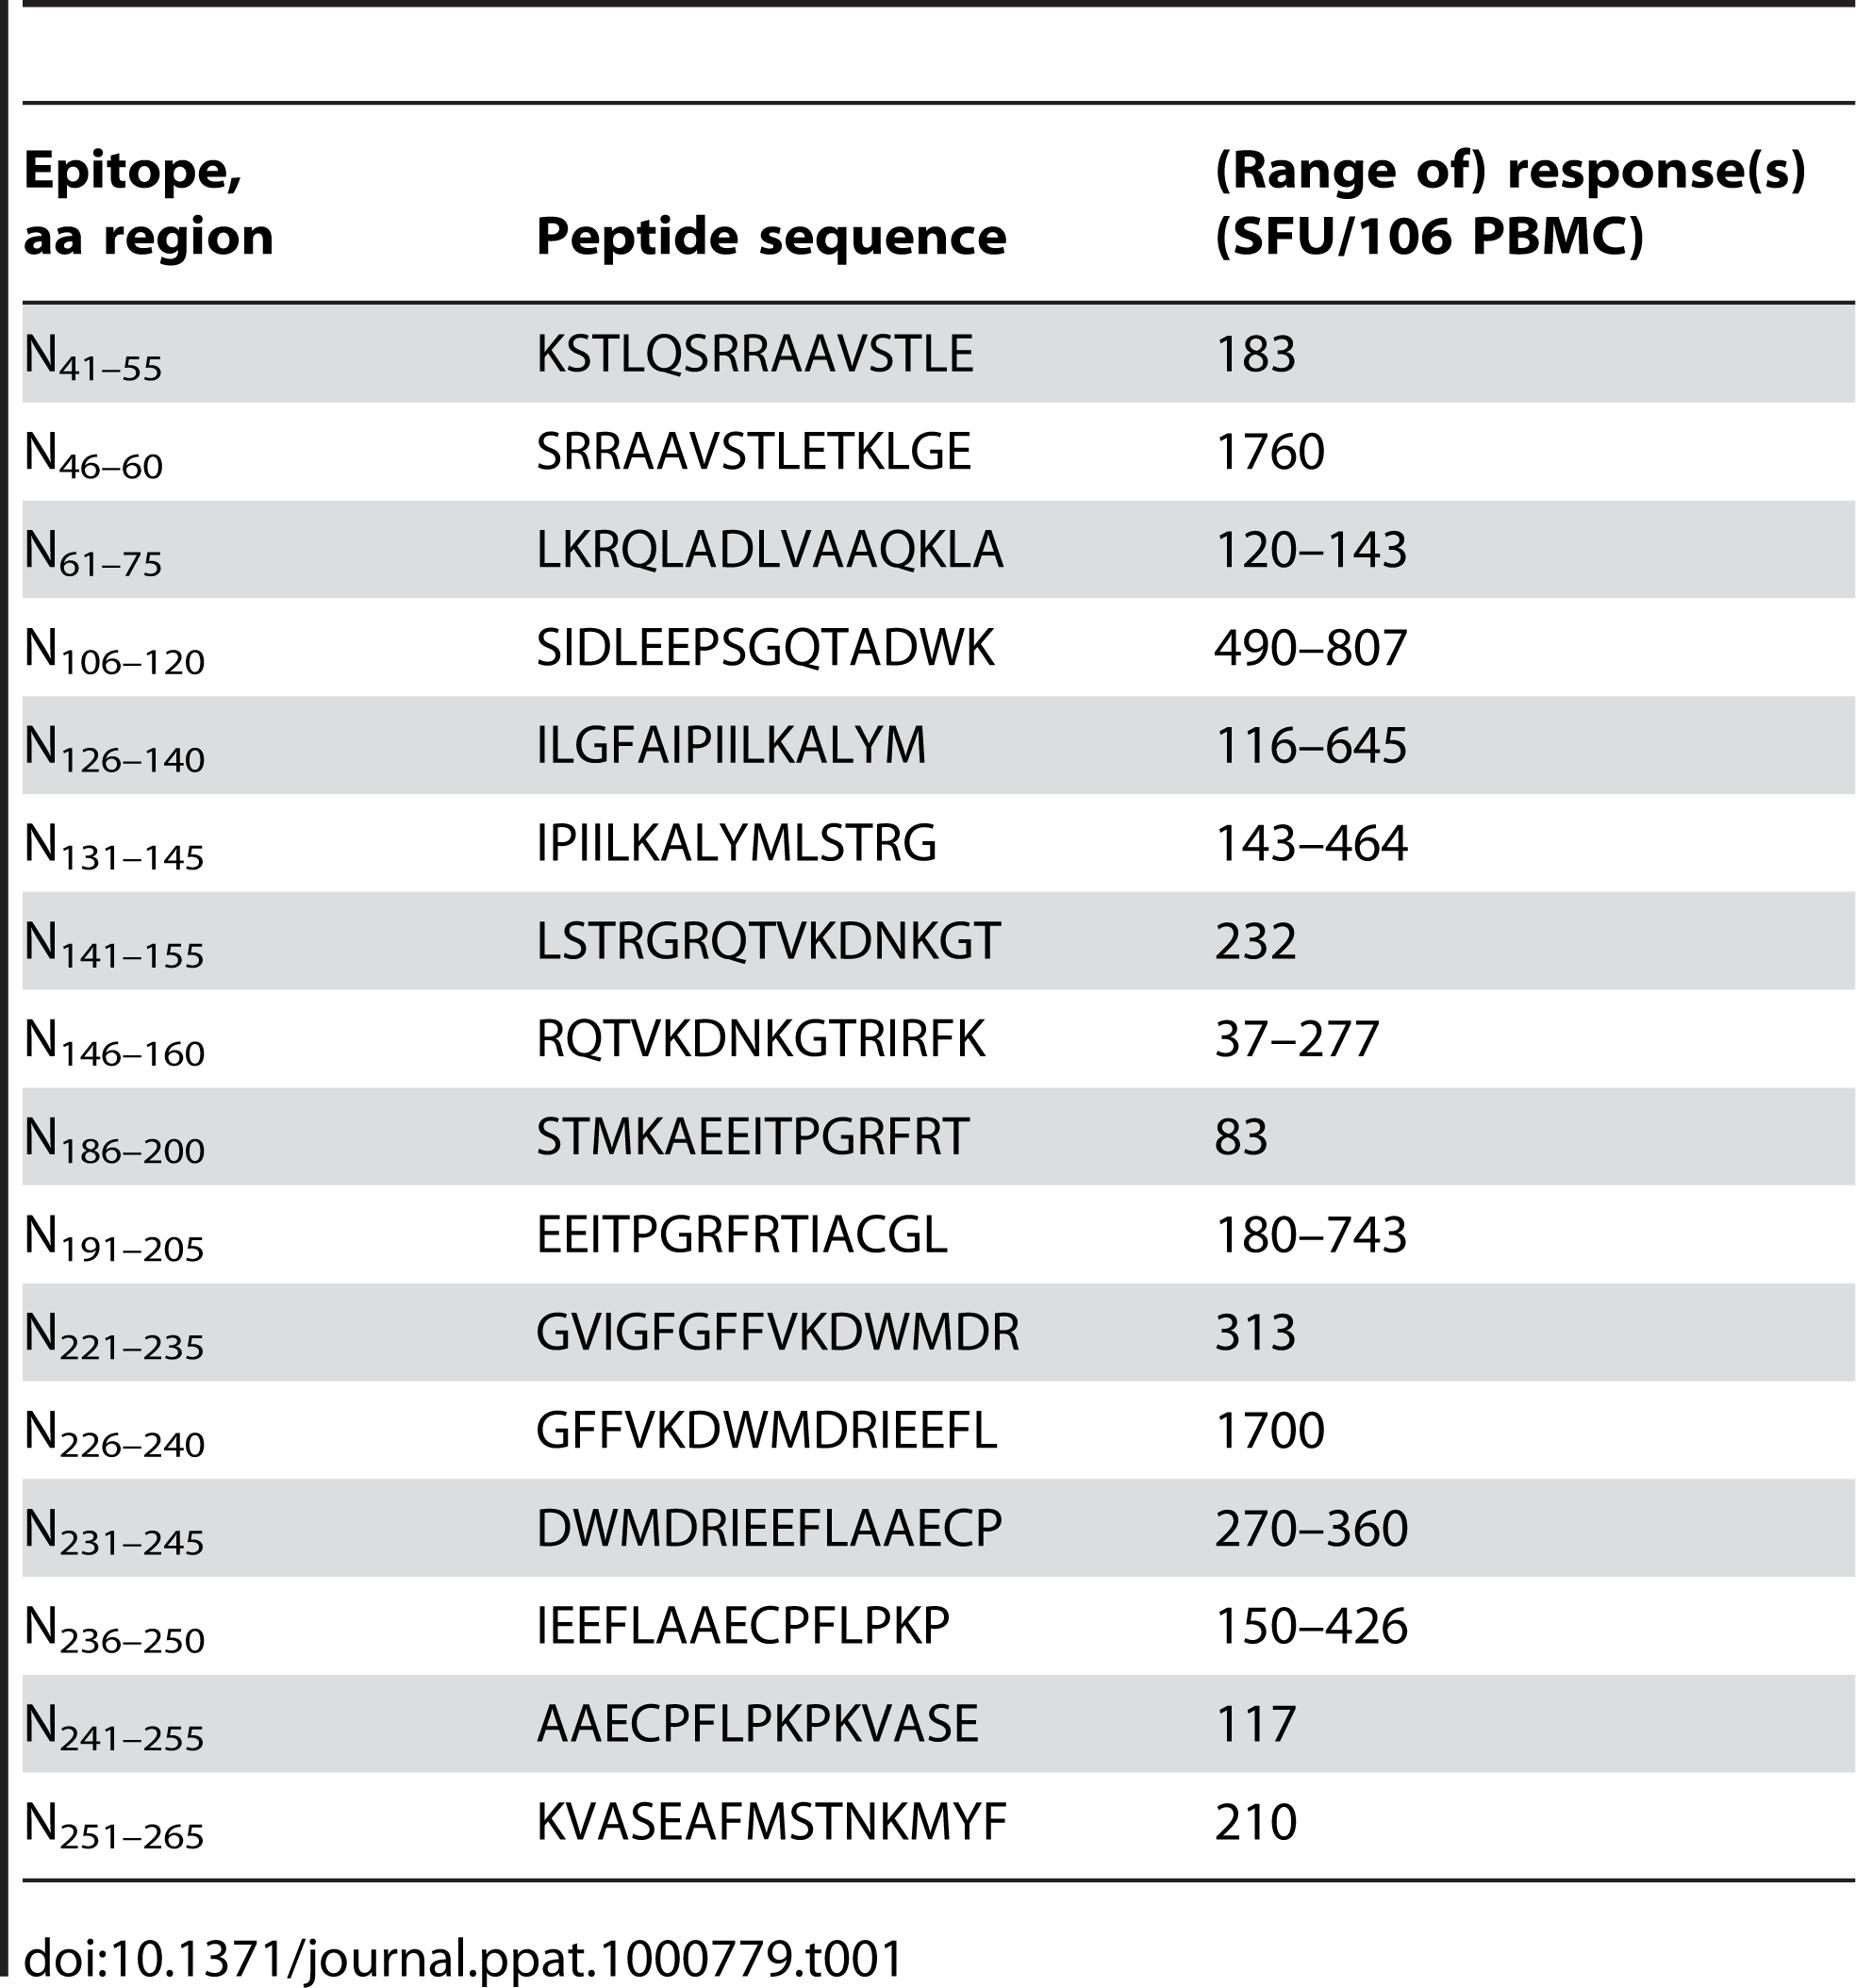 Determined T-cell epitopes within the ANDV N-protein and observed range(s) of response(s).